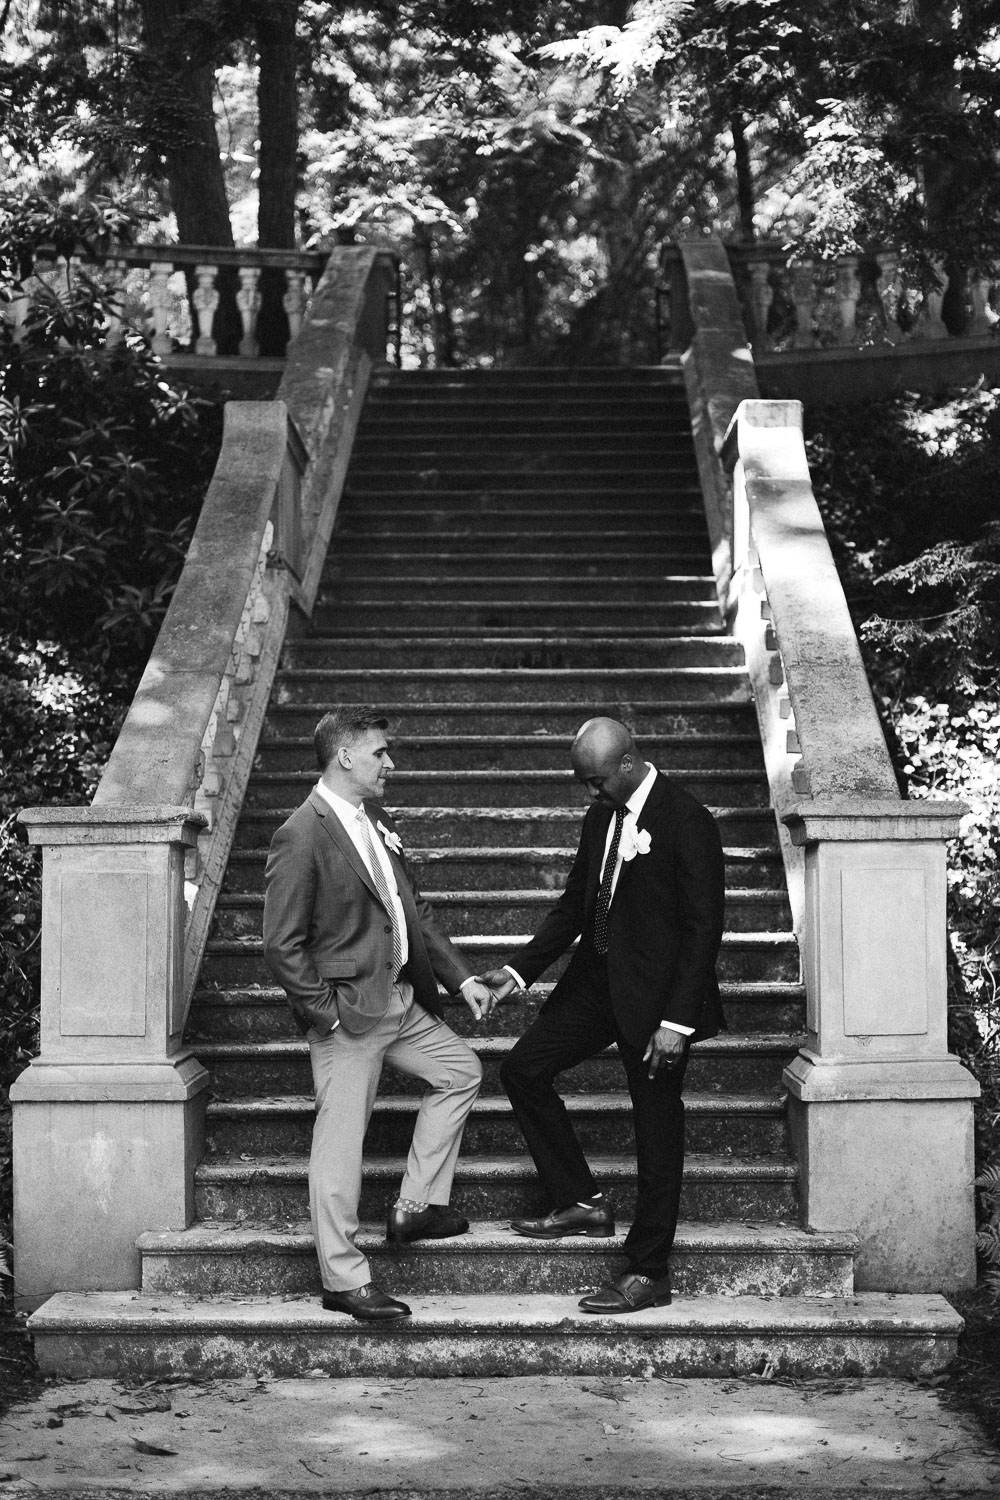 decatur_atlanta_courthouse_elopement_dekalb_gay_weddings-1254.jpg